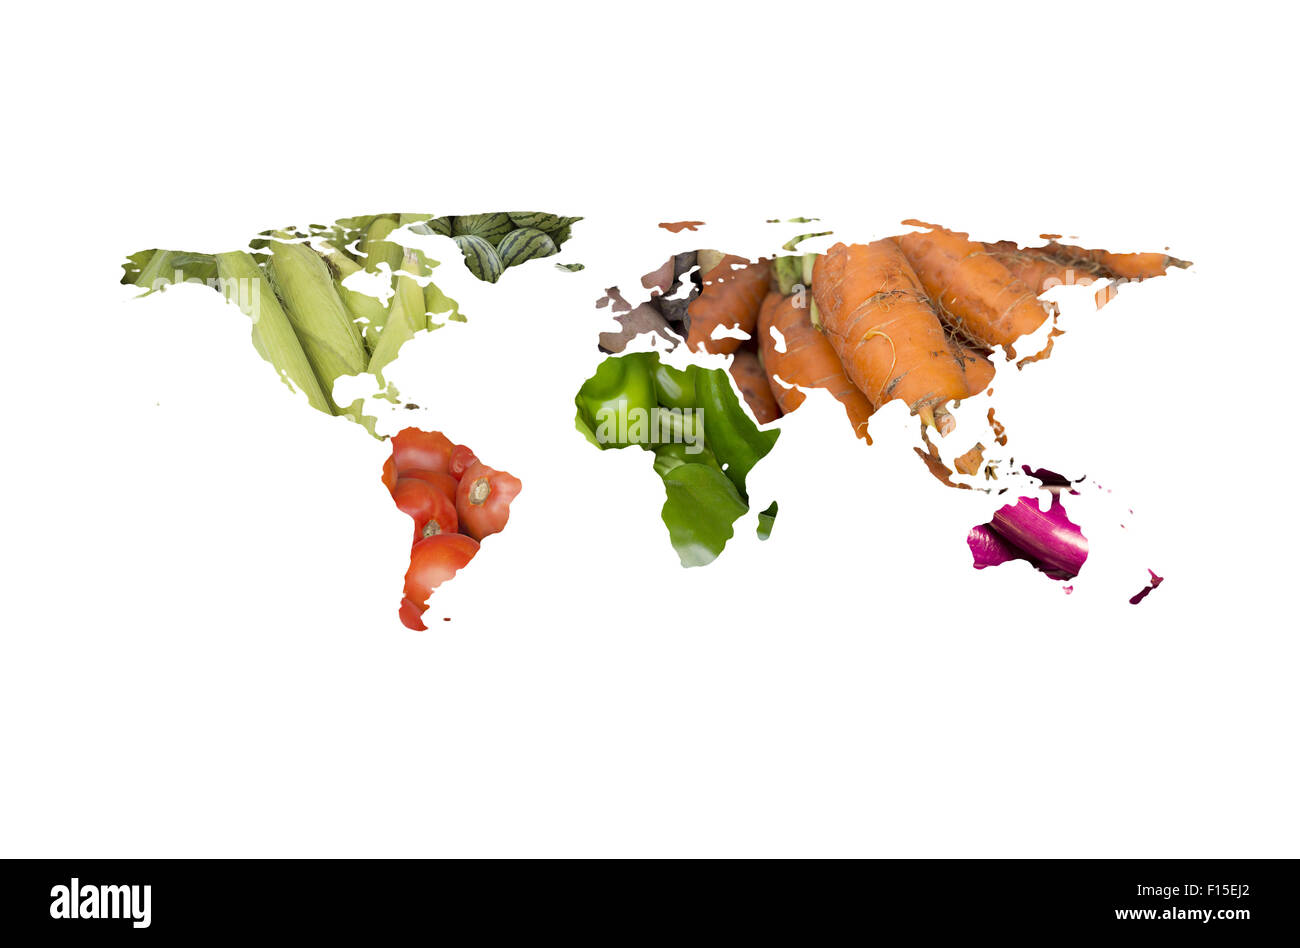 World map collage of lots of popular fruits and vegetables stock world map collage of lots of popular fruits and vegetables gumiabroncs Gallery